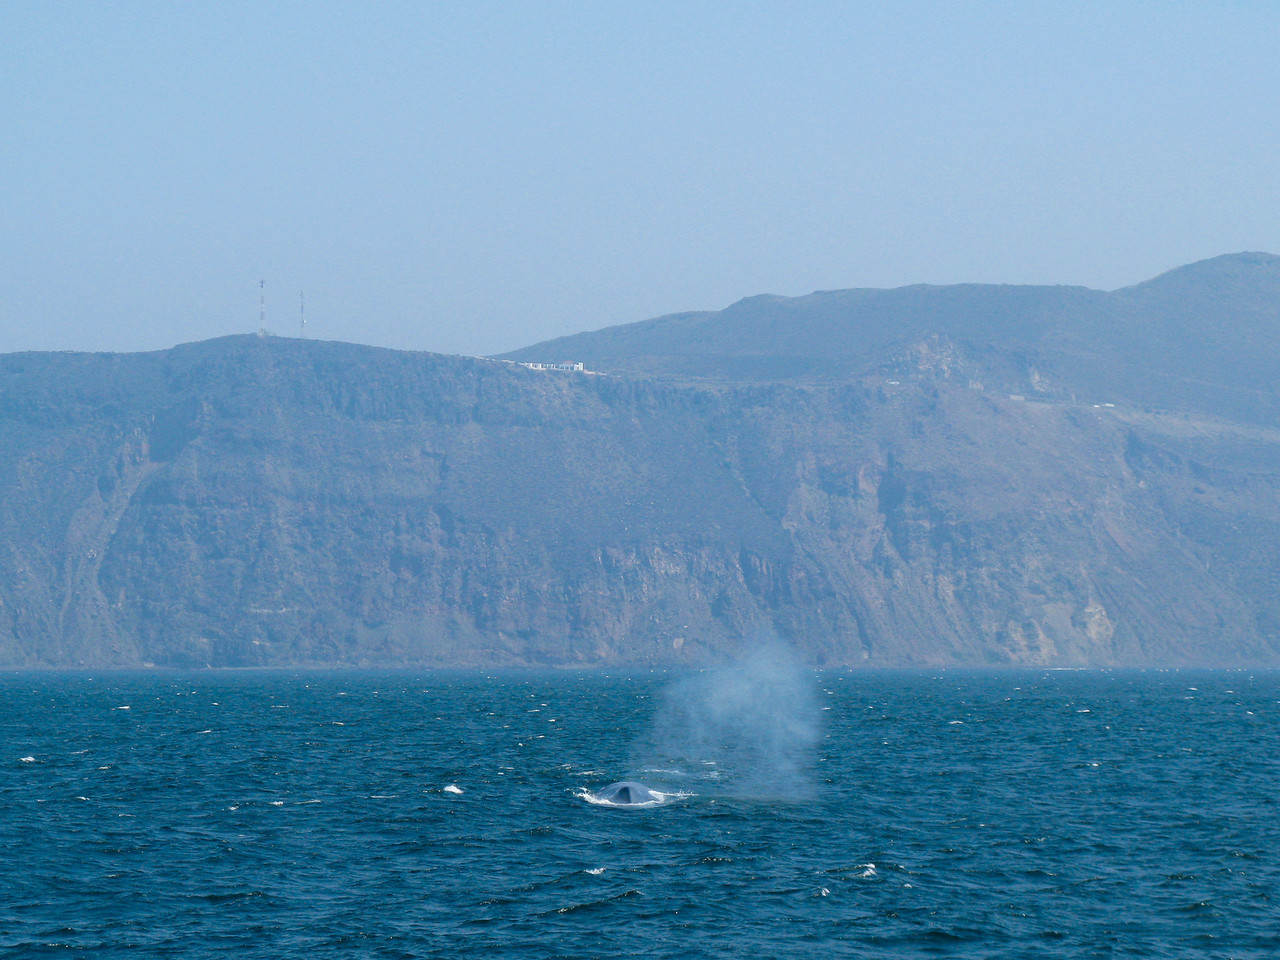 A Blue Whale somewhere off the coast of Mexico between Ensenada and the US border. Taken on July 16, 2008 with a Canon A720IS point and shoot.